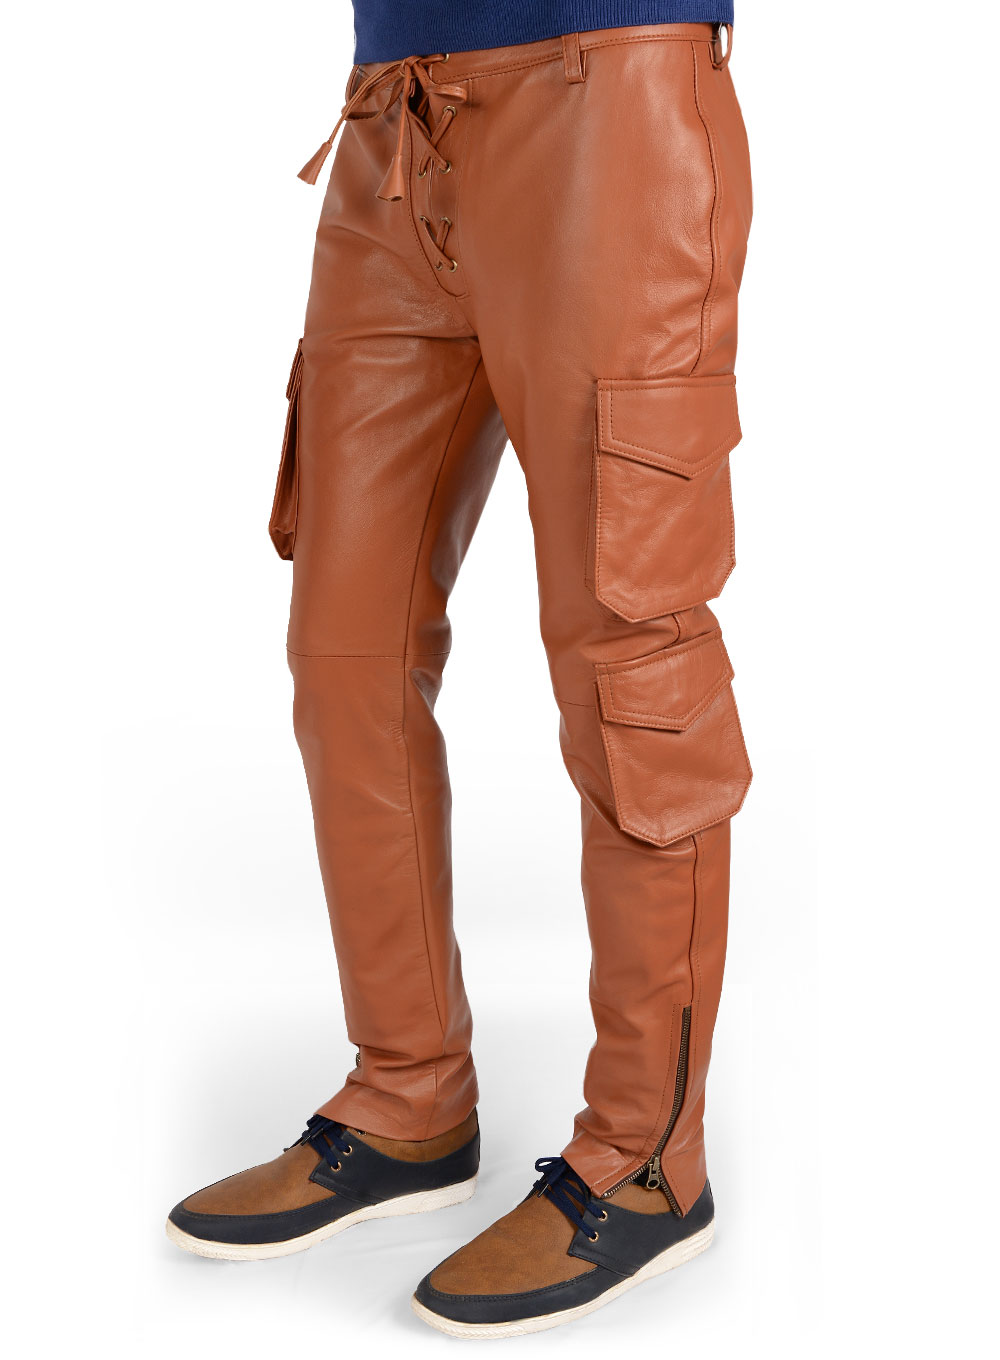 Terrain Brown Drifter Leather Cargo Pants